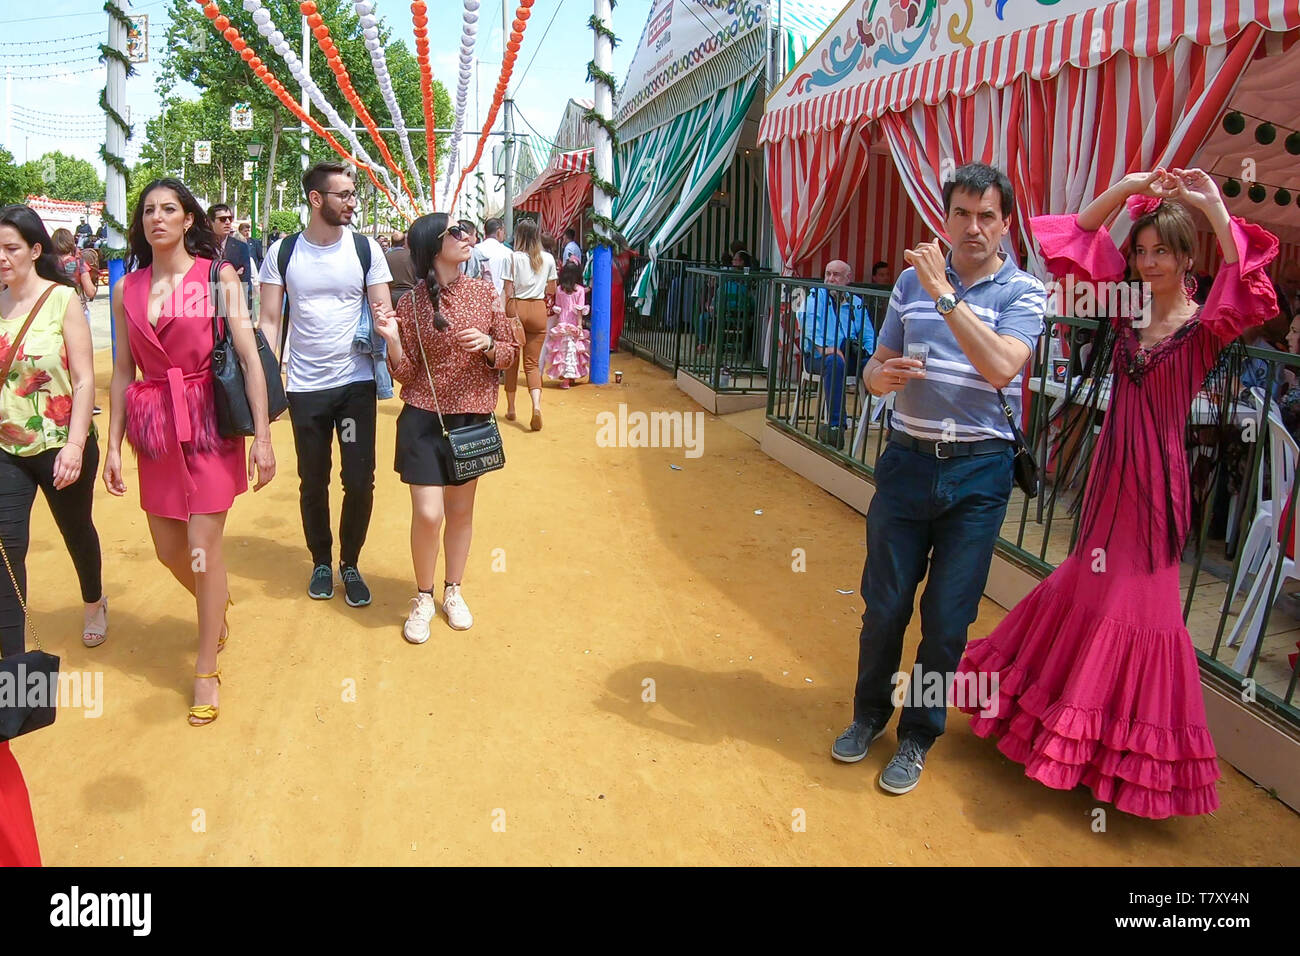 Seville, Spain - May 5, 2019: People walking in the April Fair of Seville on May, 5, 2019 in Seville, Spain - Stock Image